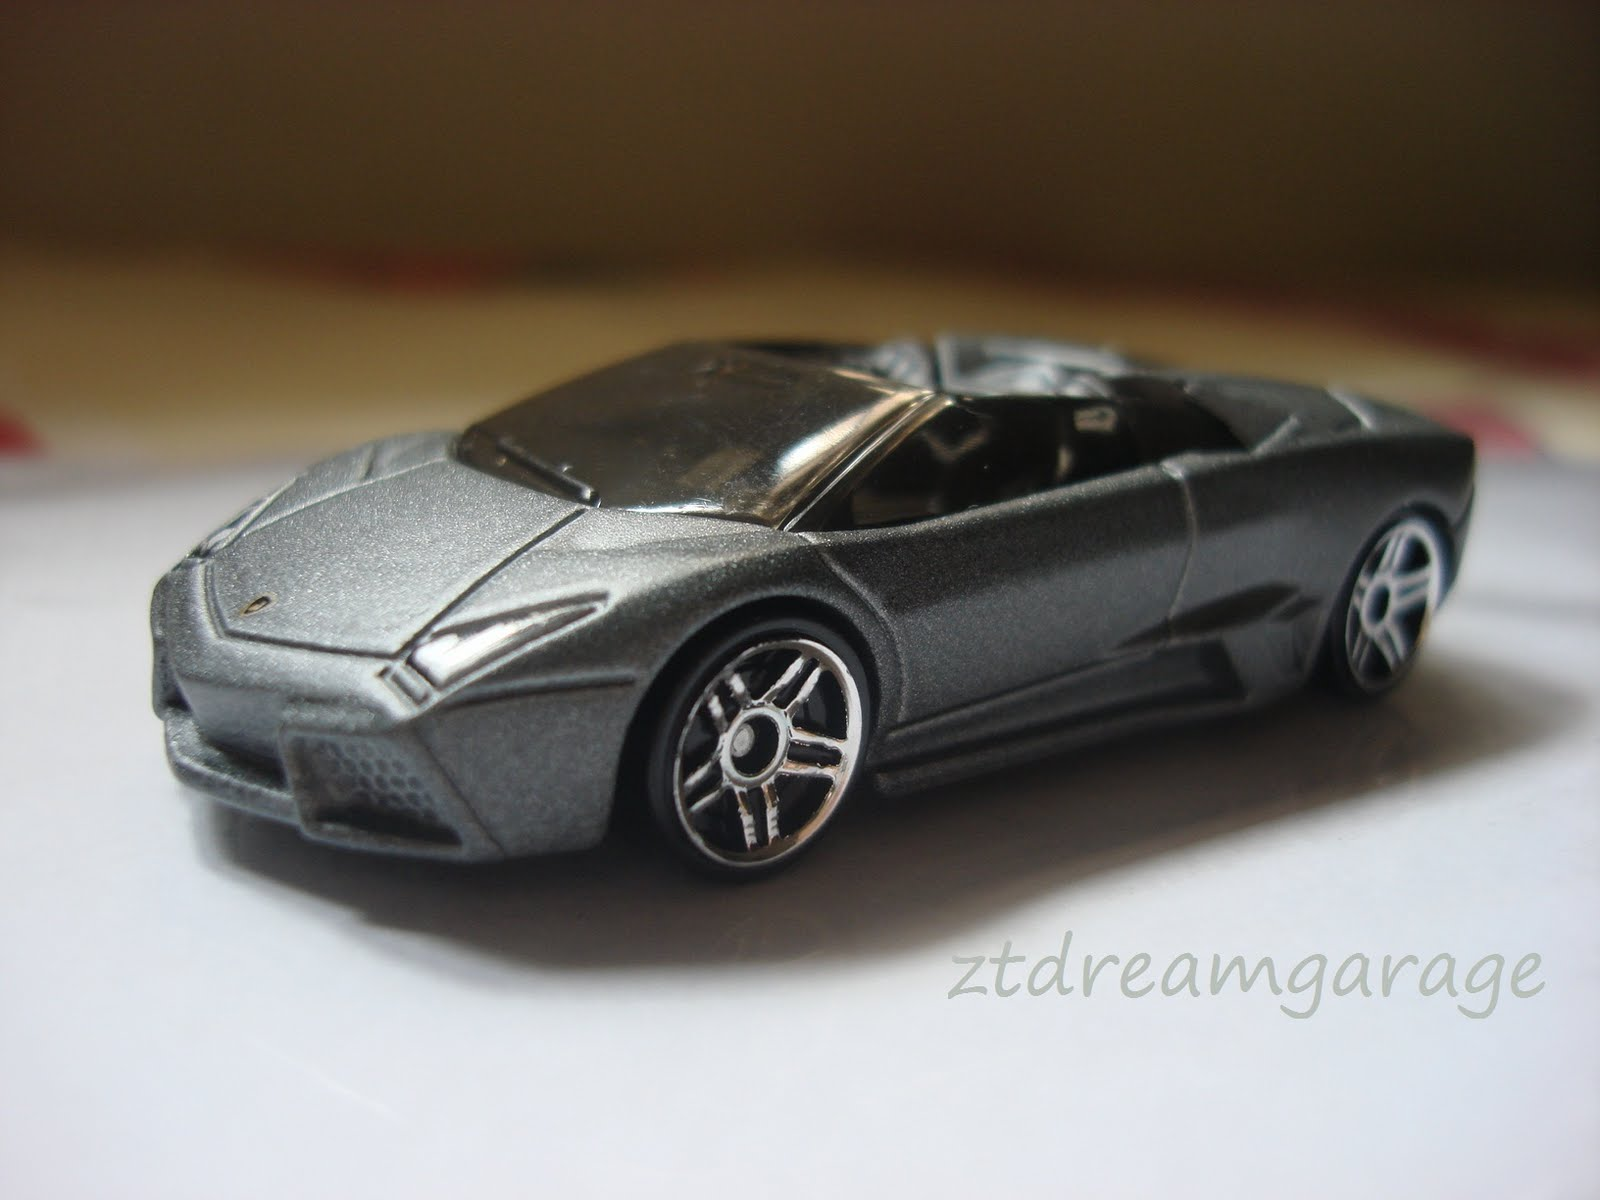 zt 39 s dream garage hot wheels lamborghini reventon roadster. Black Bedroom Furniture Sets. Home Design Ideas